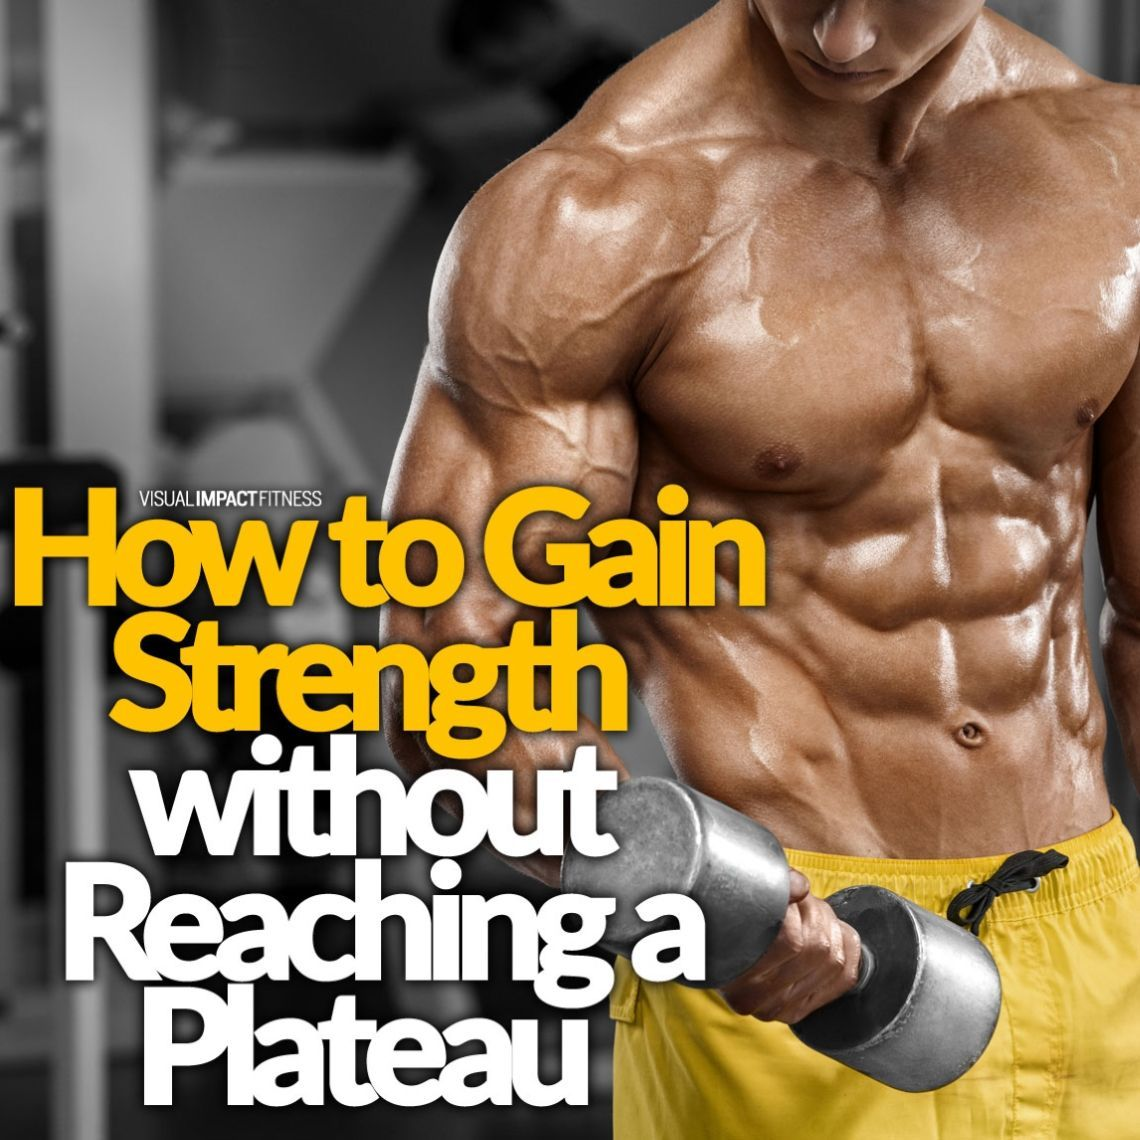 How To Gain Strength Without Reaching A Plateau Full Body Strength Training Workout Workout Plan For Men Workout Plan For Women